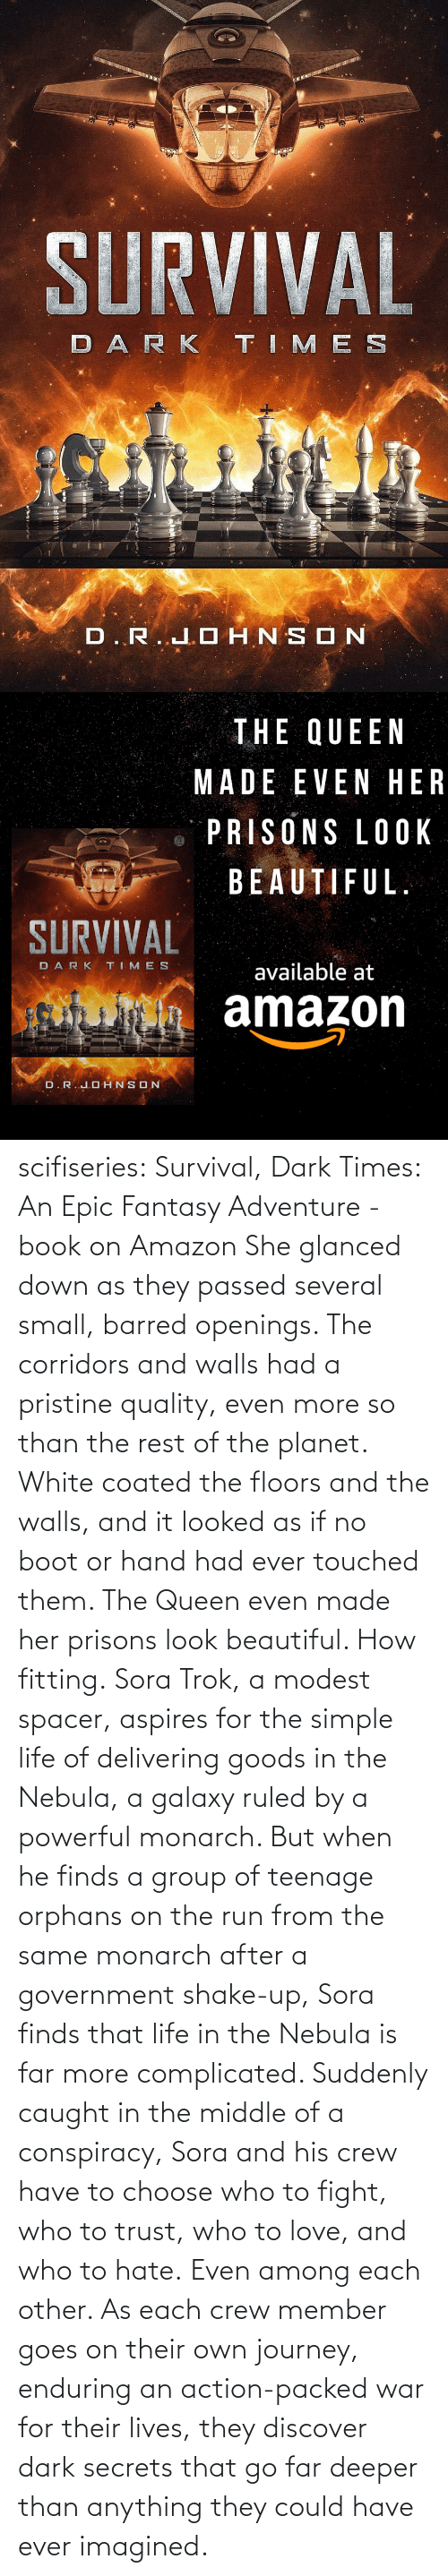 After: scifiseries: Survival, Dark Times: An Epic Fantasy Adventure - book on Amazon  She glanced down as they  passed several small, barred openings. The corridors and walls had a  pristine quality, even more so than the rest of the planet. White coated  the floors and the walls, and it looked as if no boot or hand had ever  touched them.  The Queen even made her prisons look beautiful.  How fitting. Sora  Trok, a modest spacer, aspires for the simple life of delivering goods  in the Nebula, a galaxy ruled by a powerful monarch. But when he finds a  group of teenage orphans on the run from the same monarch after a  government shake-up, Sora finds that life in the Nebula is far more complicated.  Suddenly  caught in the middle of a conspiracy, Sora and his crew have to choose  who to fight, who to trust, who to love, and who to hate. Even among each other.  As  each crew member goes on their own journey, enduring an action-packed  war for their lives, they discover dark secrets that go far deeper than  anything they could have ever imagined.